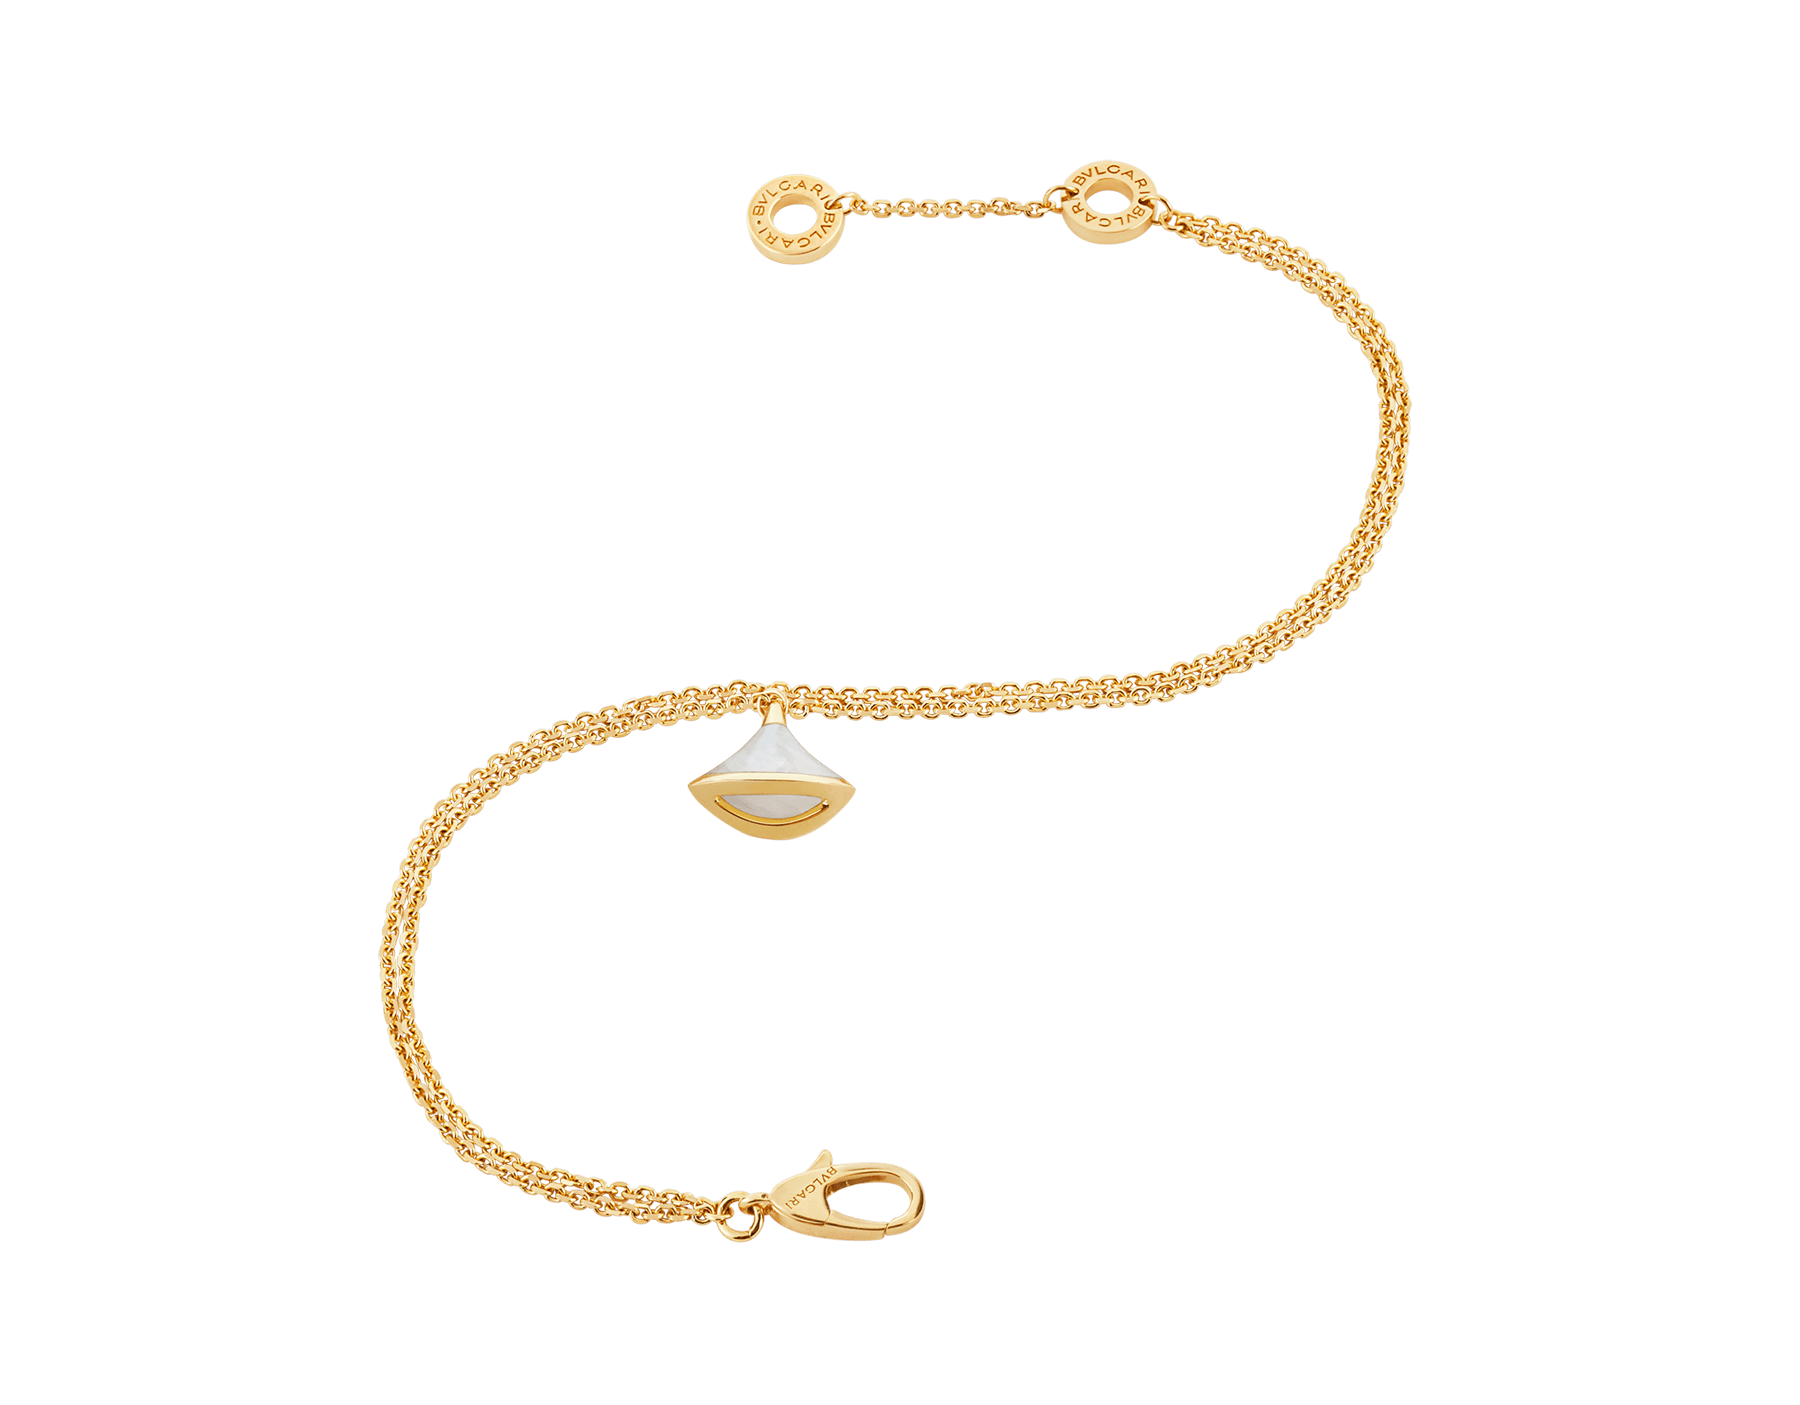 DIVAS' DREAM 18 kt yellow gold bracelet with pendant set with a mother-of-pearl element BR858988 image 4